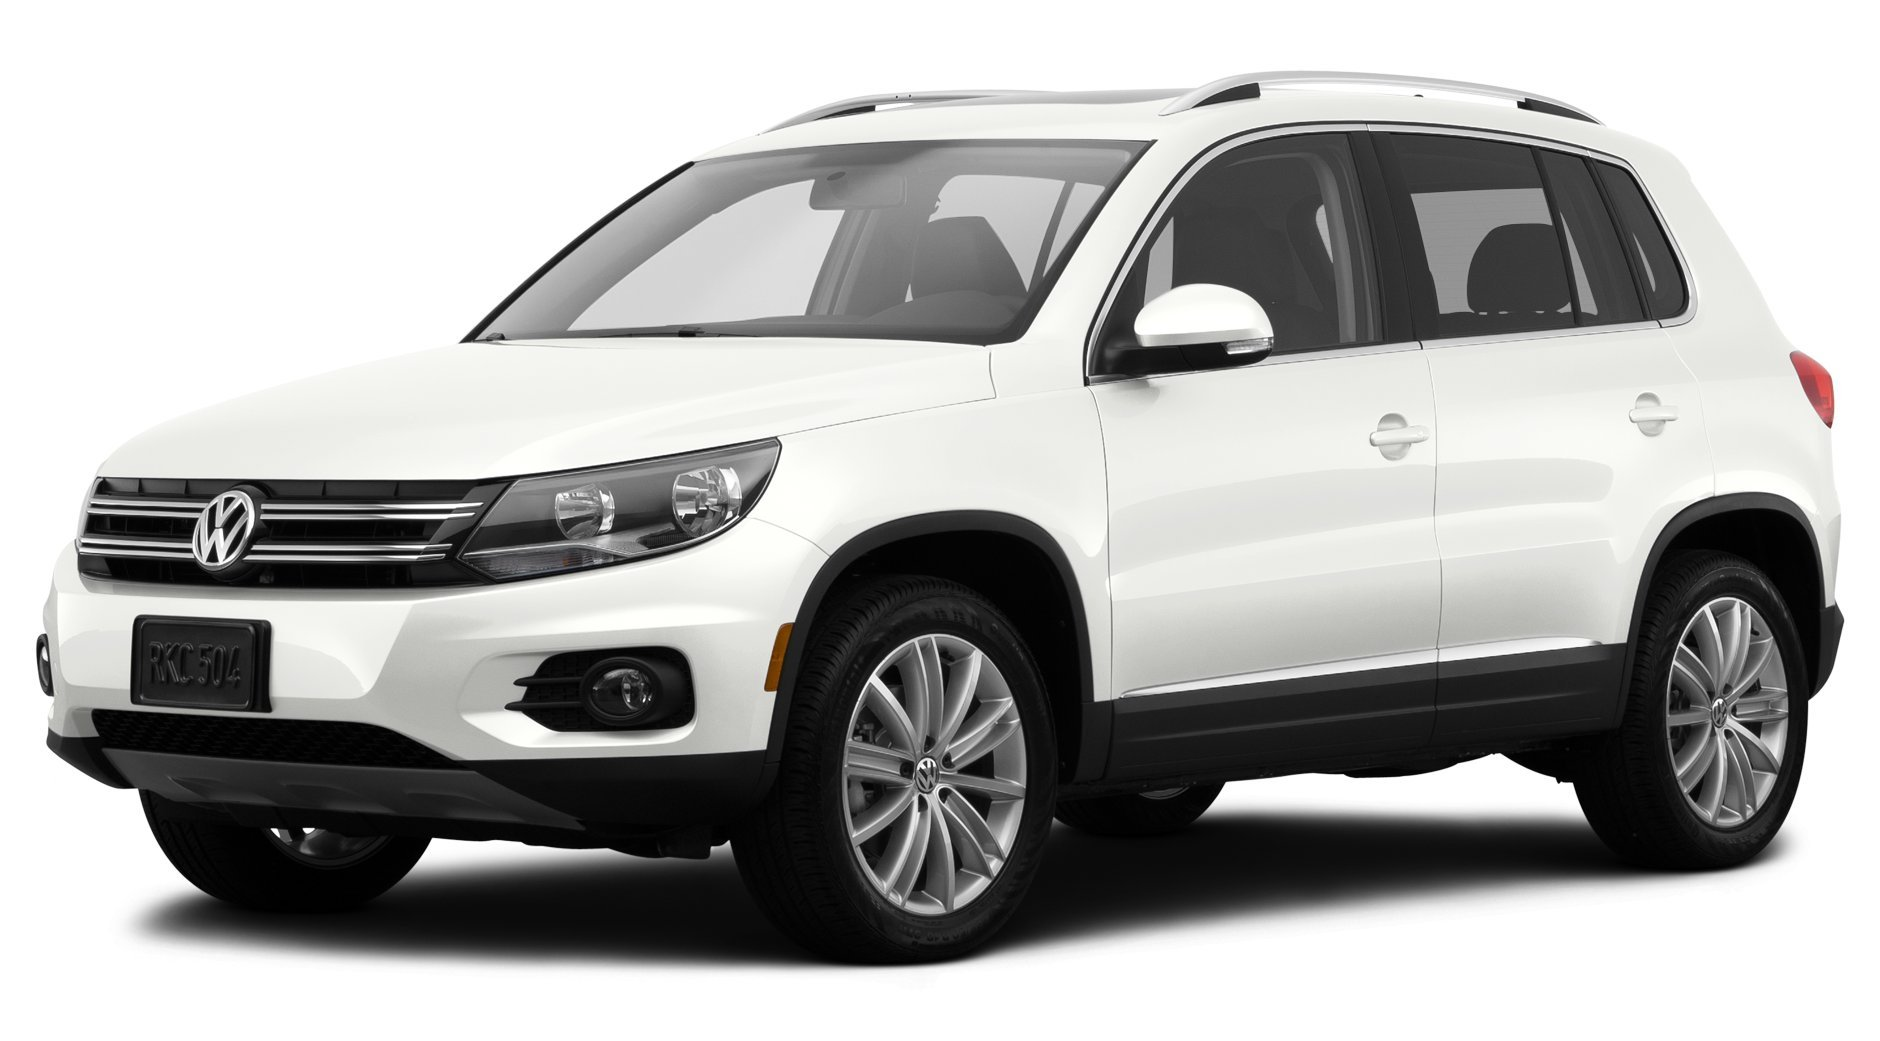 71qGwmZ0SdL Cool Review About 2012 Mercedes Ml350 Bluetec